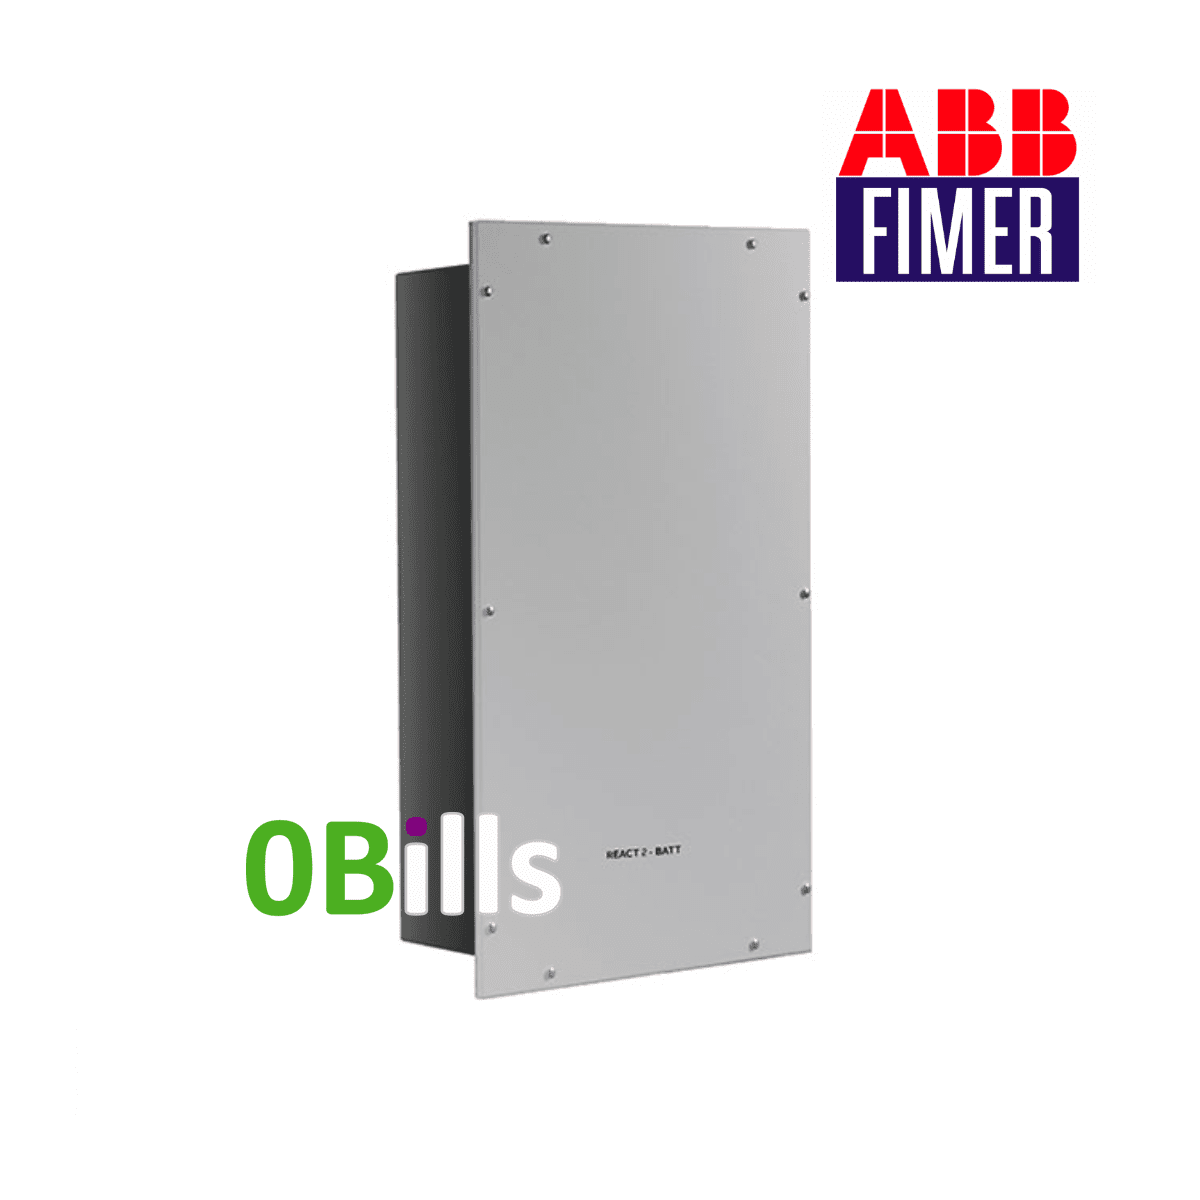 ABB Fimer REACT2 Lithium Ion Solar Battery Module